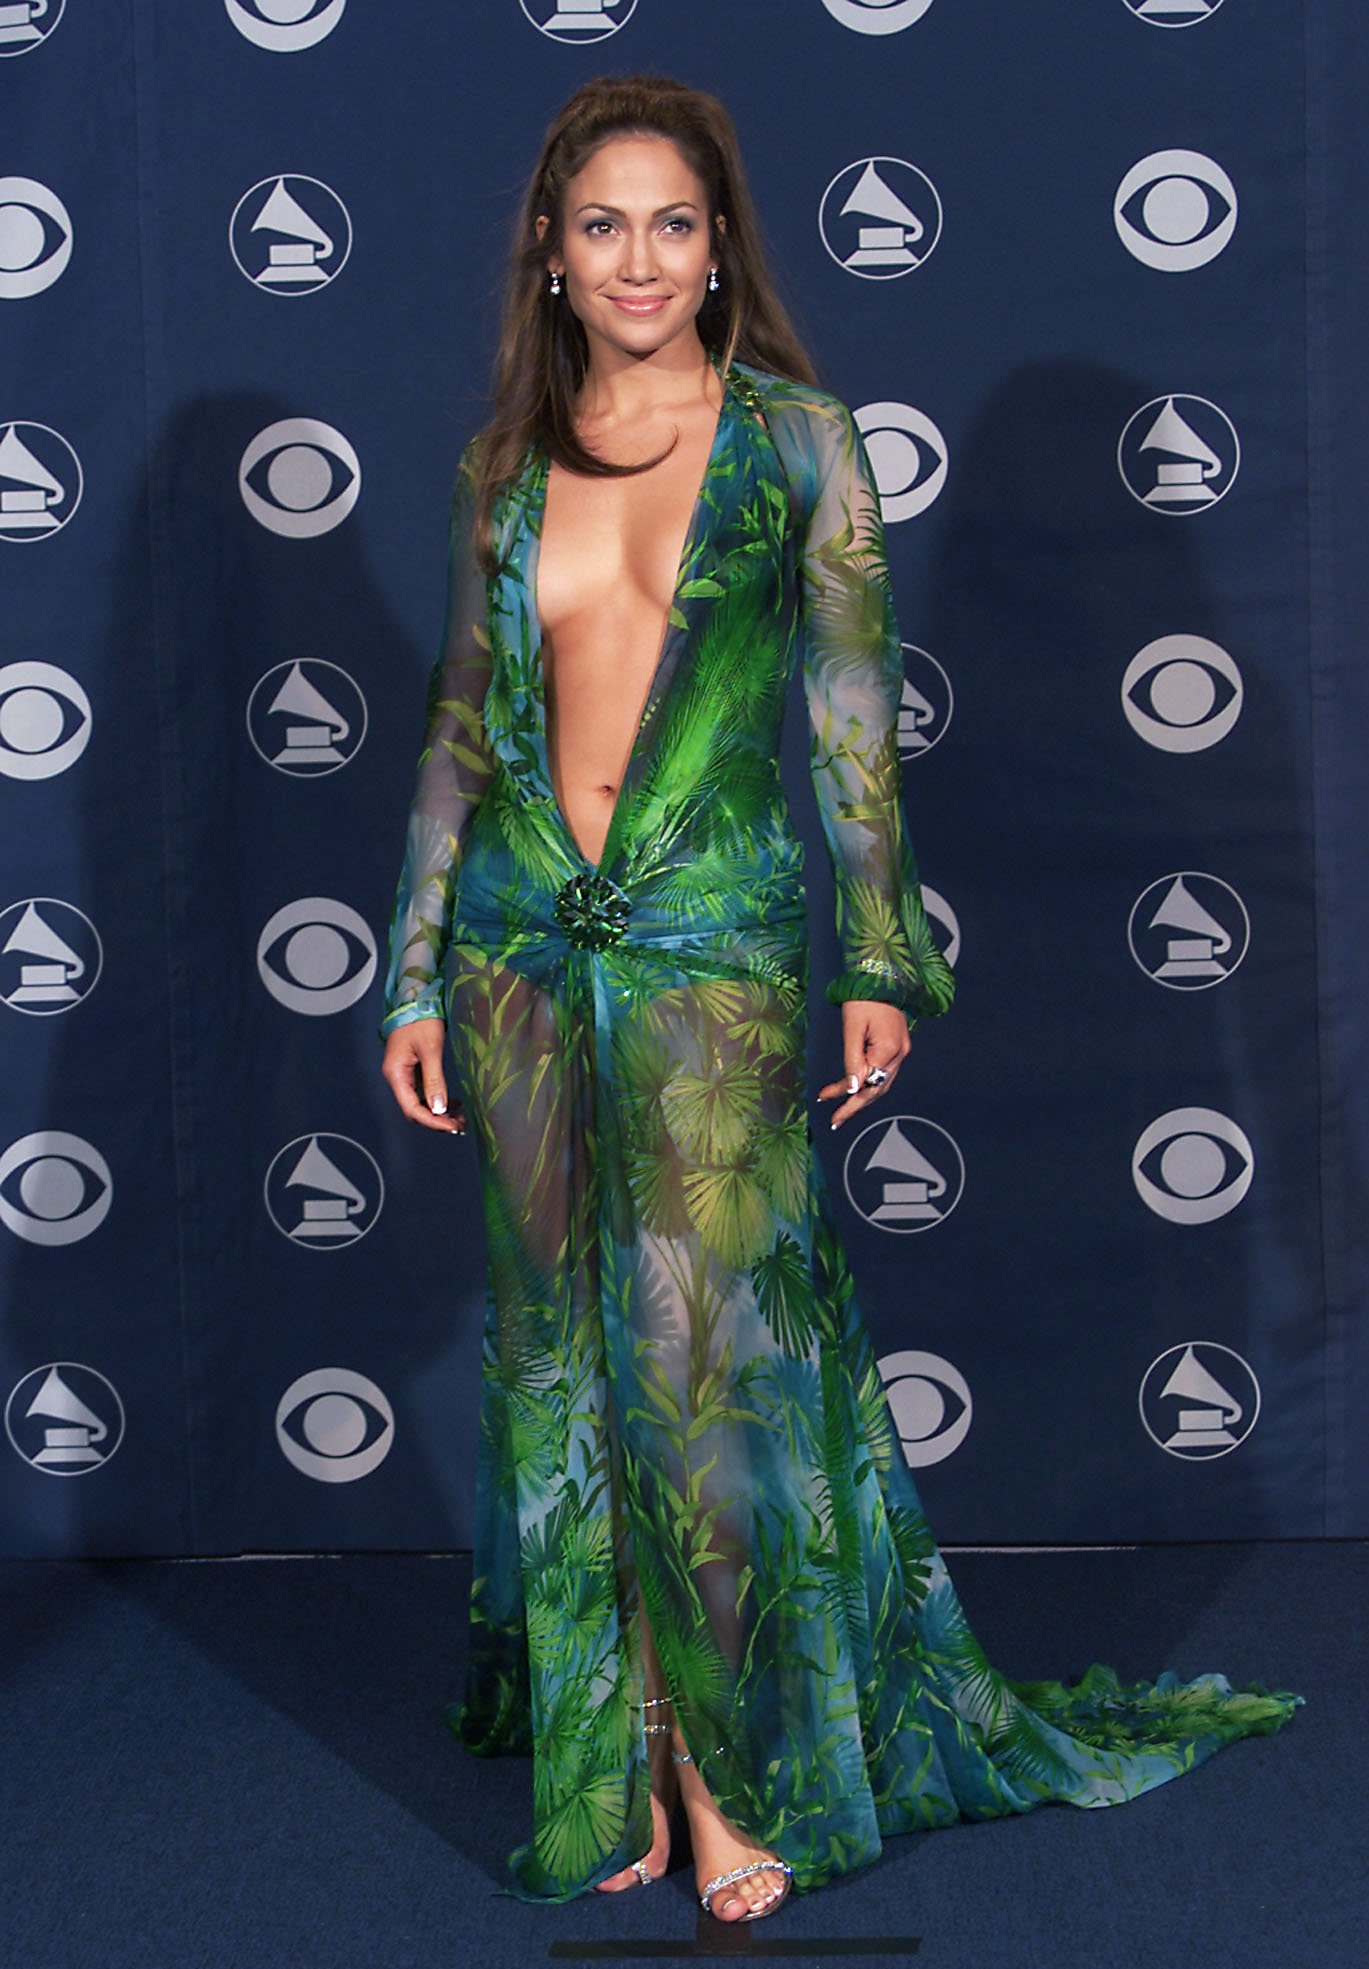 Jennifer Lopez in Versace at the 42nd Grammy Awards held in Los Angeles, CA on February 23, 2000.   Source: Getty Images